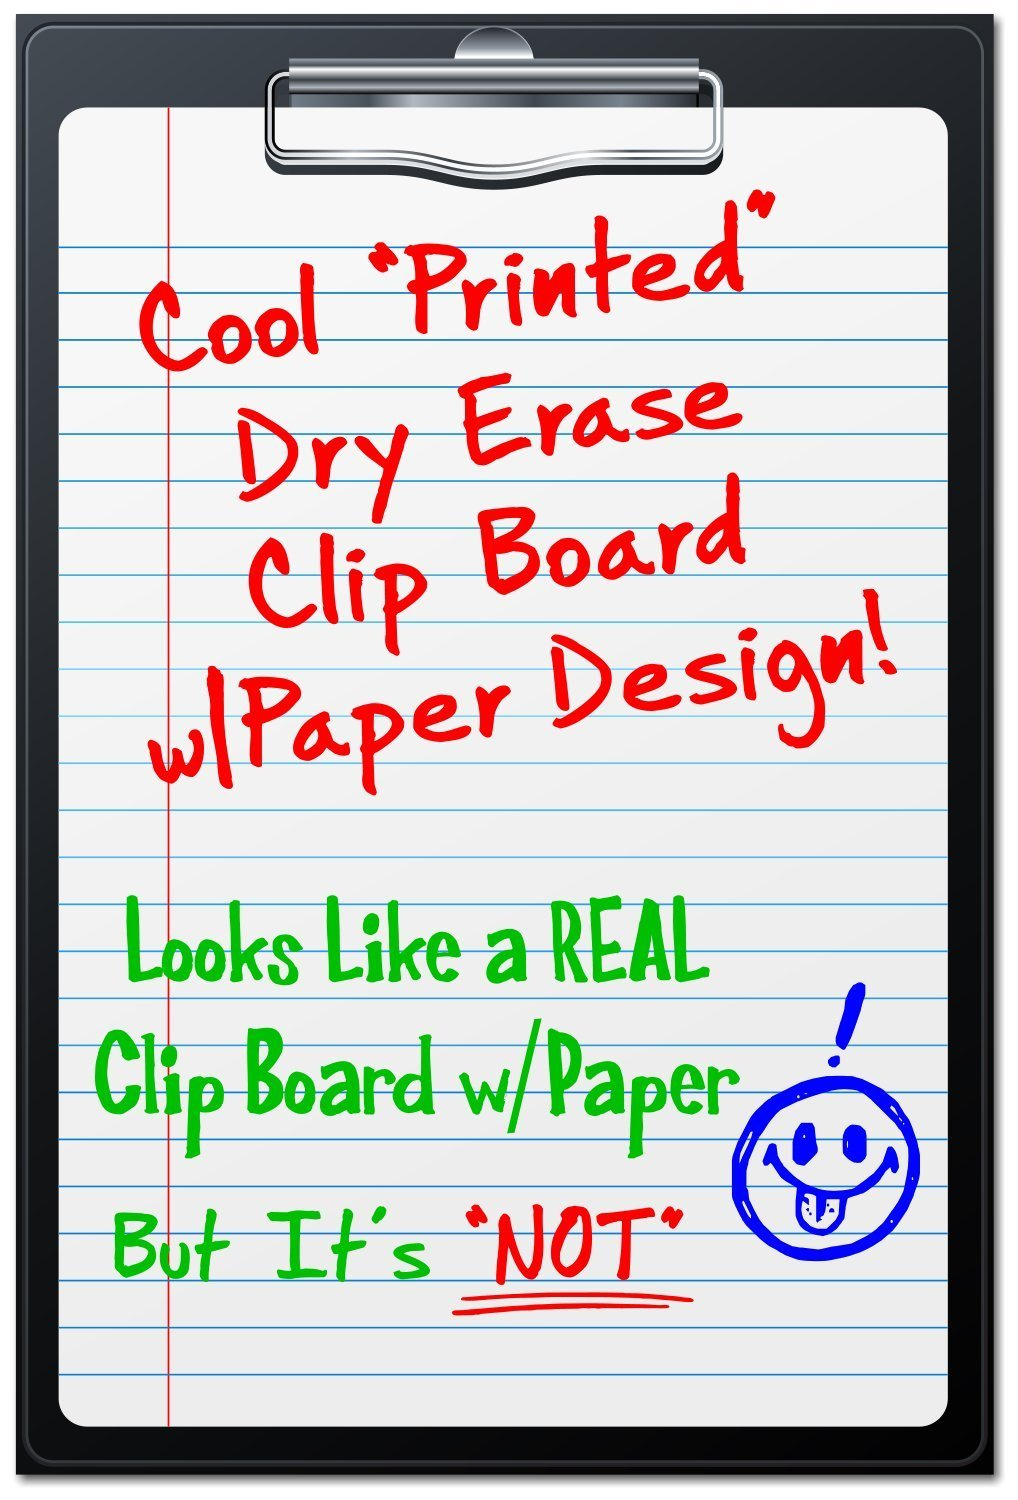 "Bigtime Magnetic Dry Erase Whiteboard - Clip Board Loose Leaf Paper Memo Design for Fridge - 30 Mil Thick - 12"" High (Clip Board - Lined Sheet Design)"